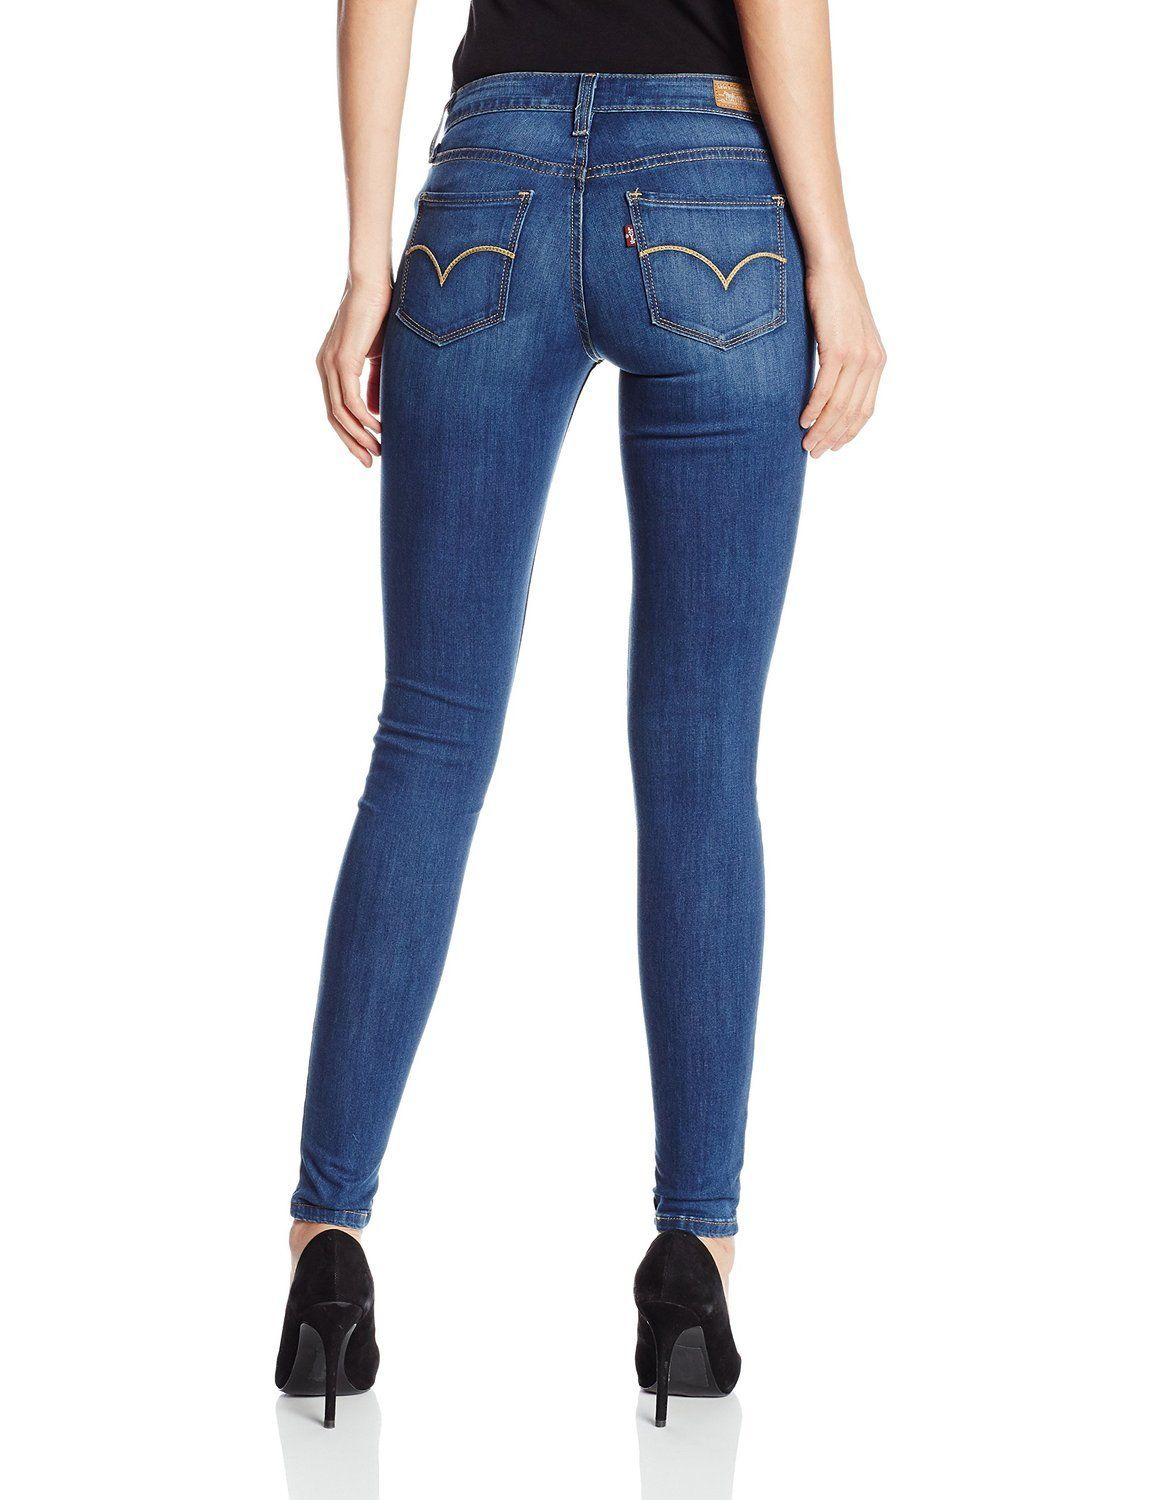 Levi's Juniors 535 Legging Jean - Indigo Falls (0193) - Click Image to Close